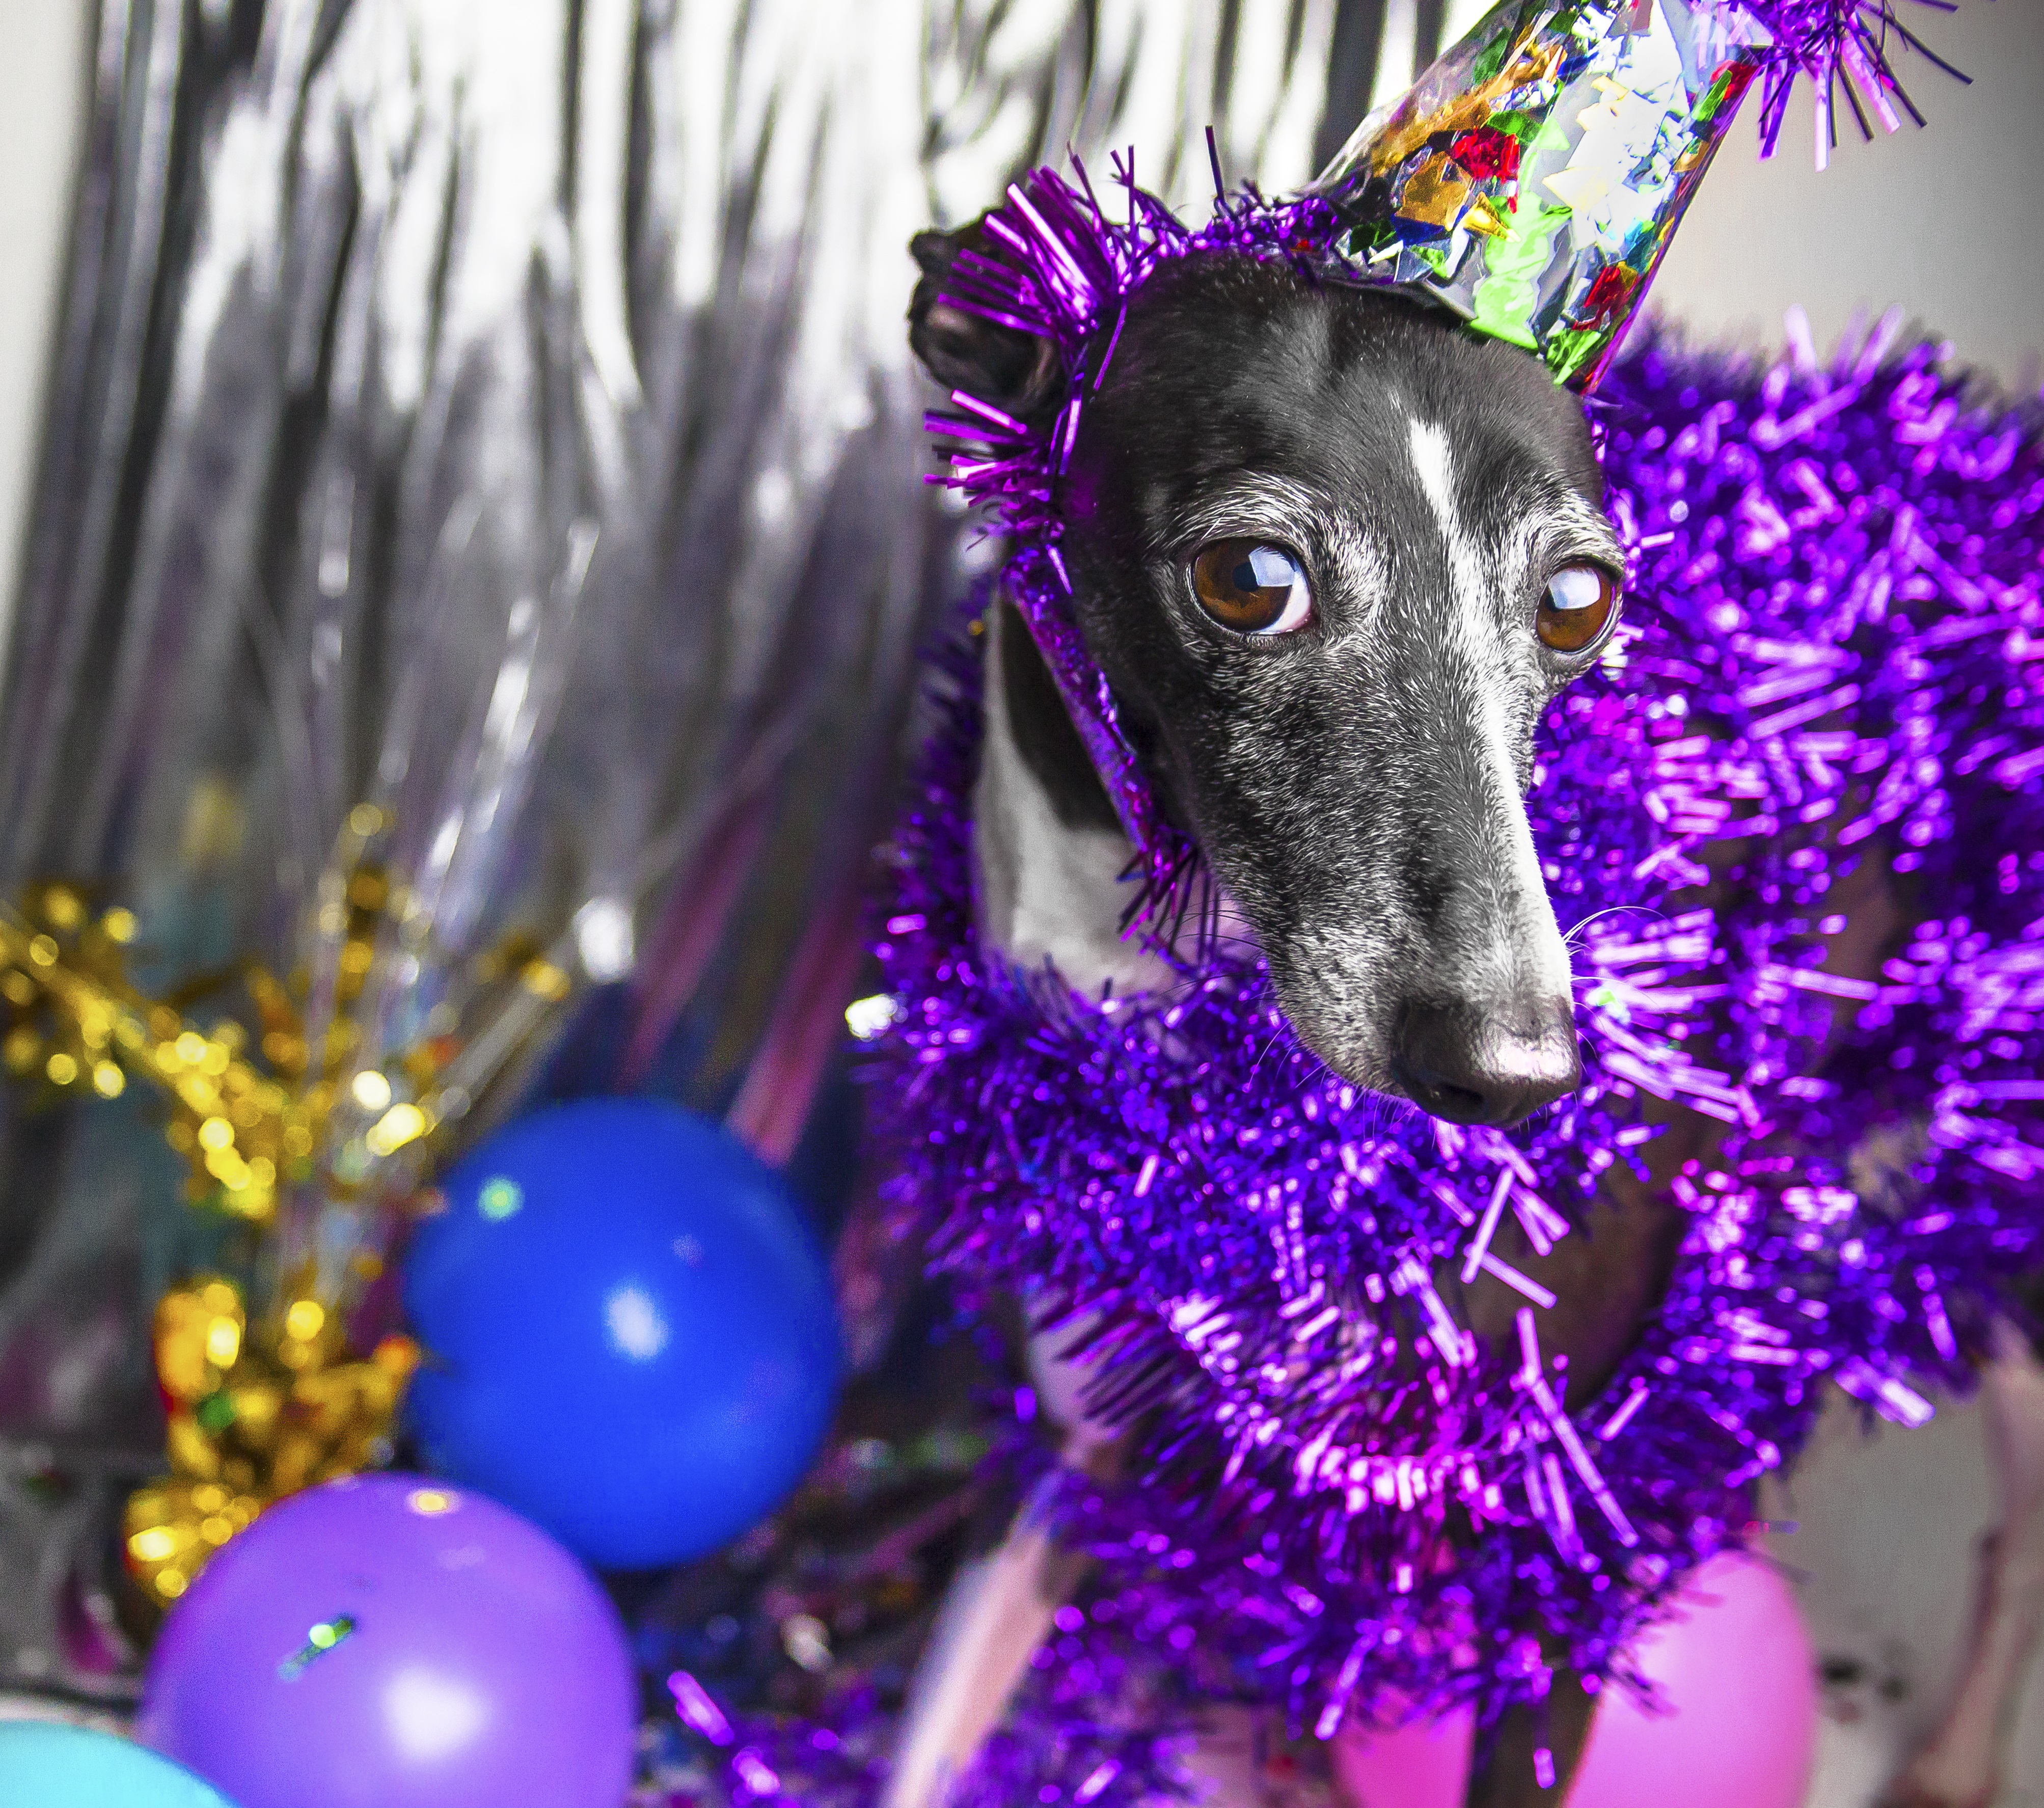 Dogs Celebrating New Year's Eve